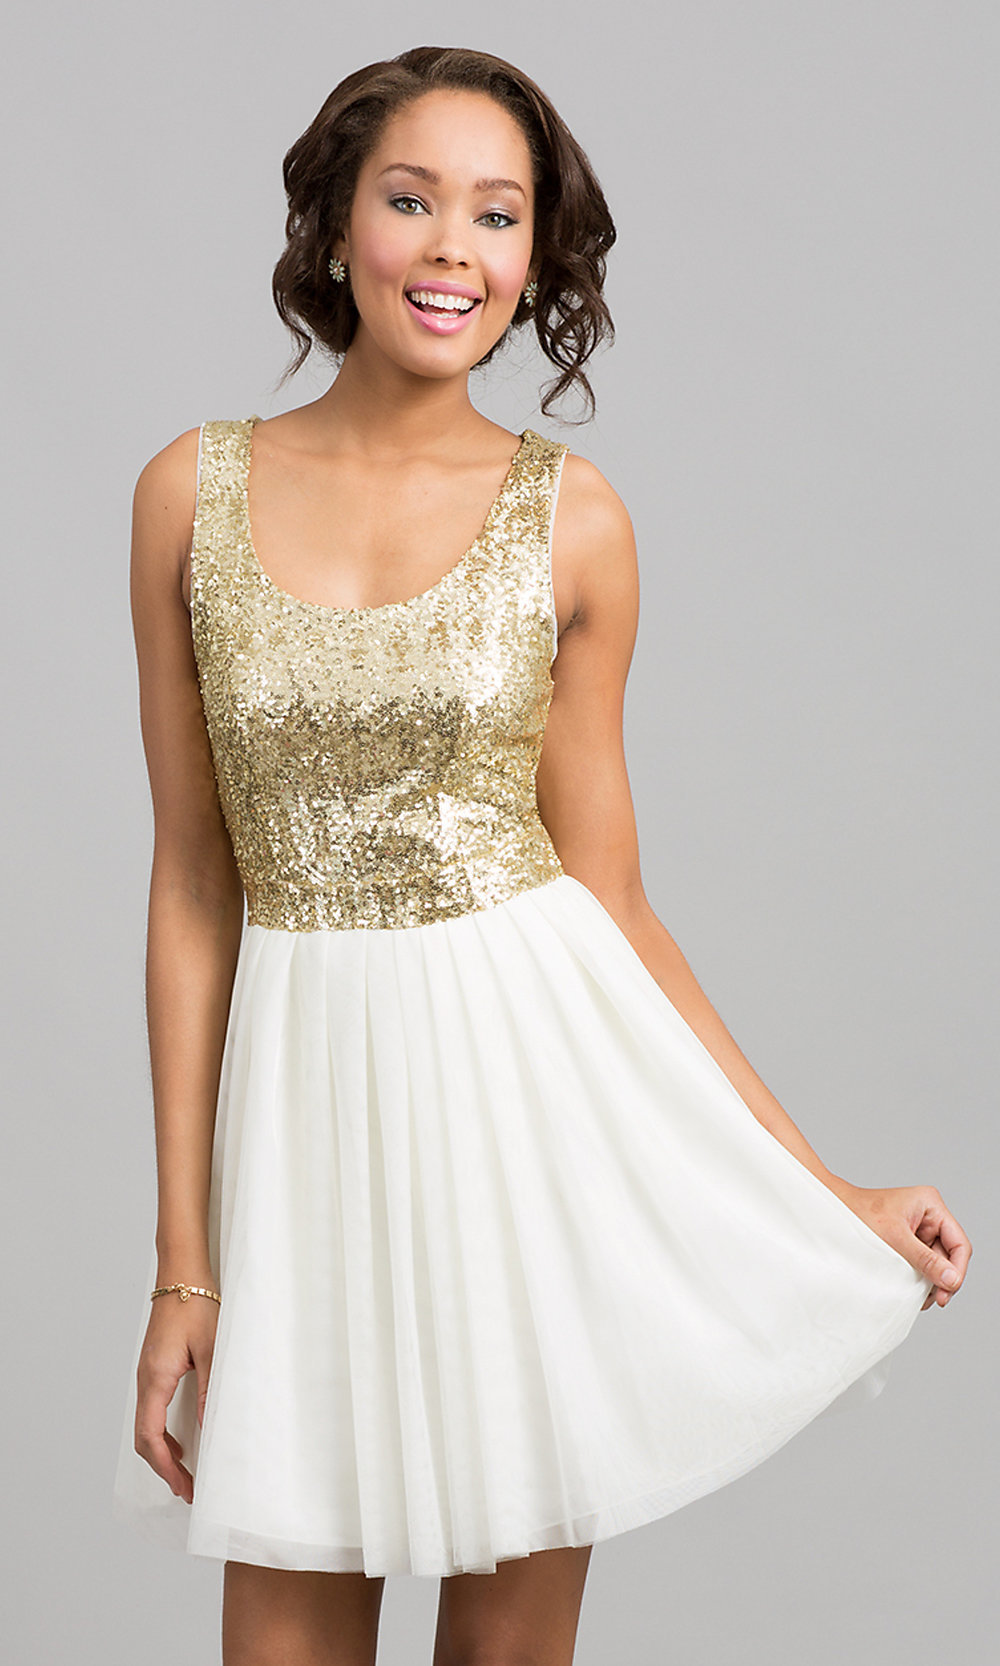 Short Dress with Sequin Top, Sequin Dresses- PromGirl